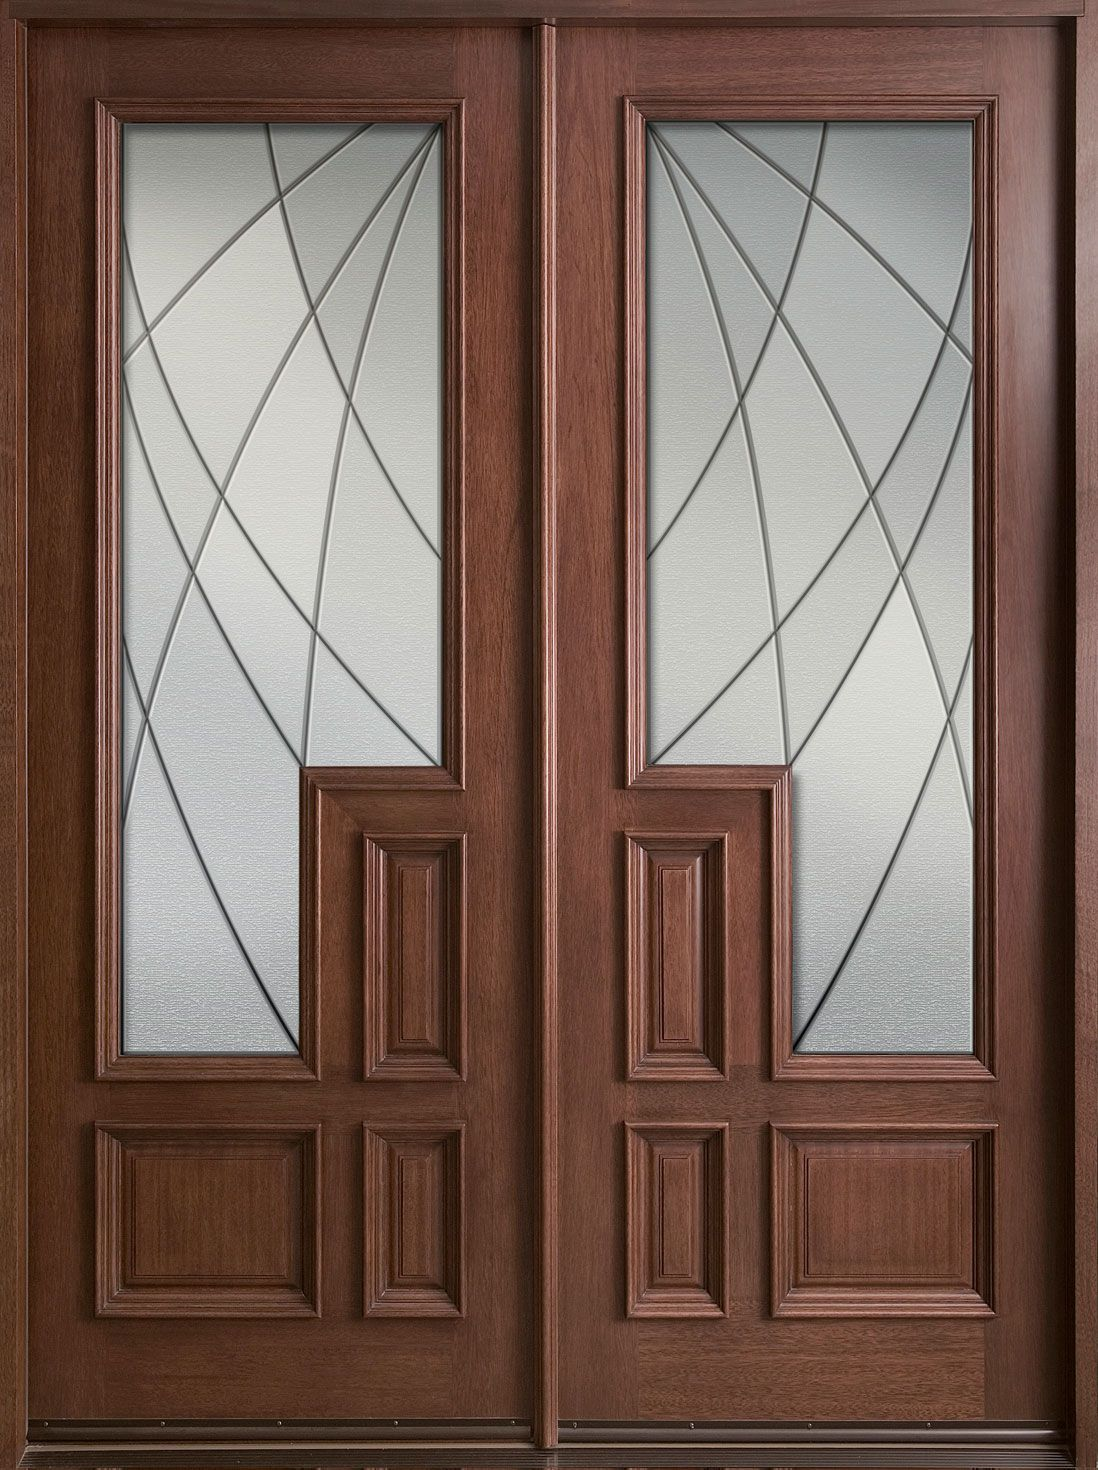 Inspiring double fiberglass entry door as furniture for for Exterior wooden door designs